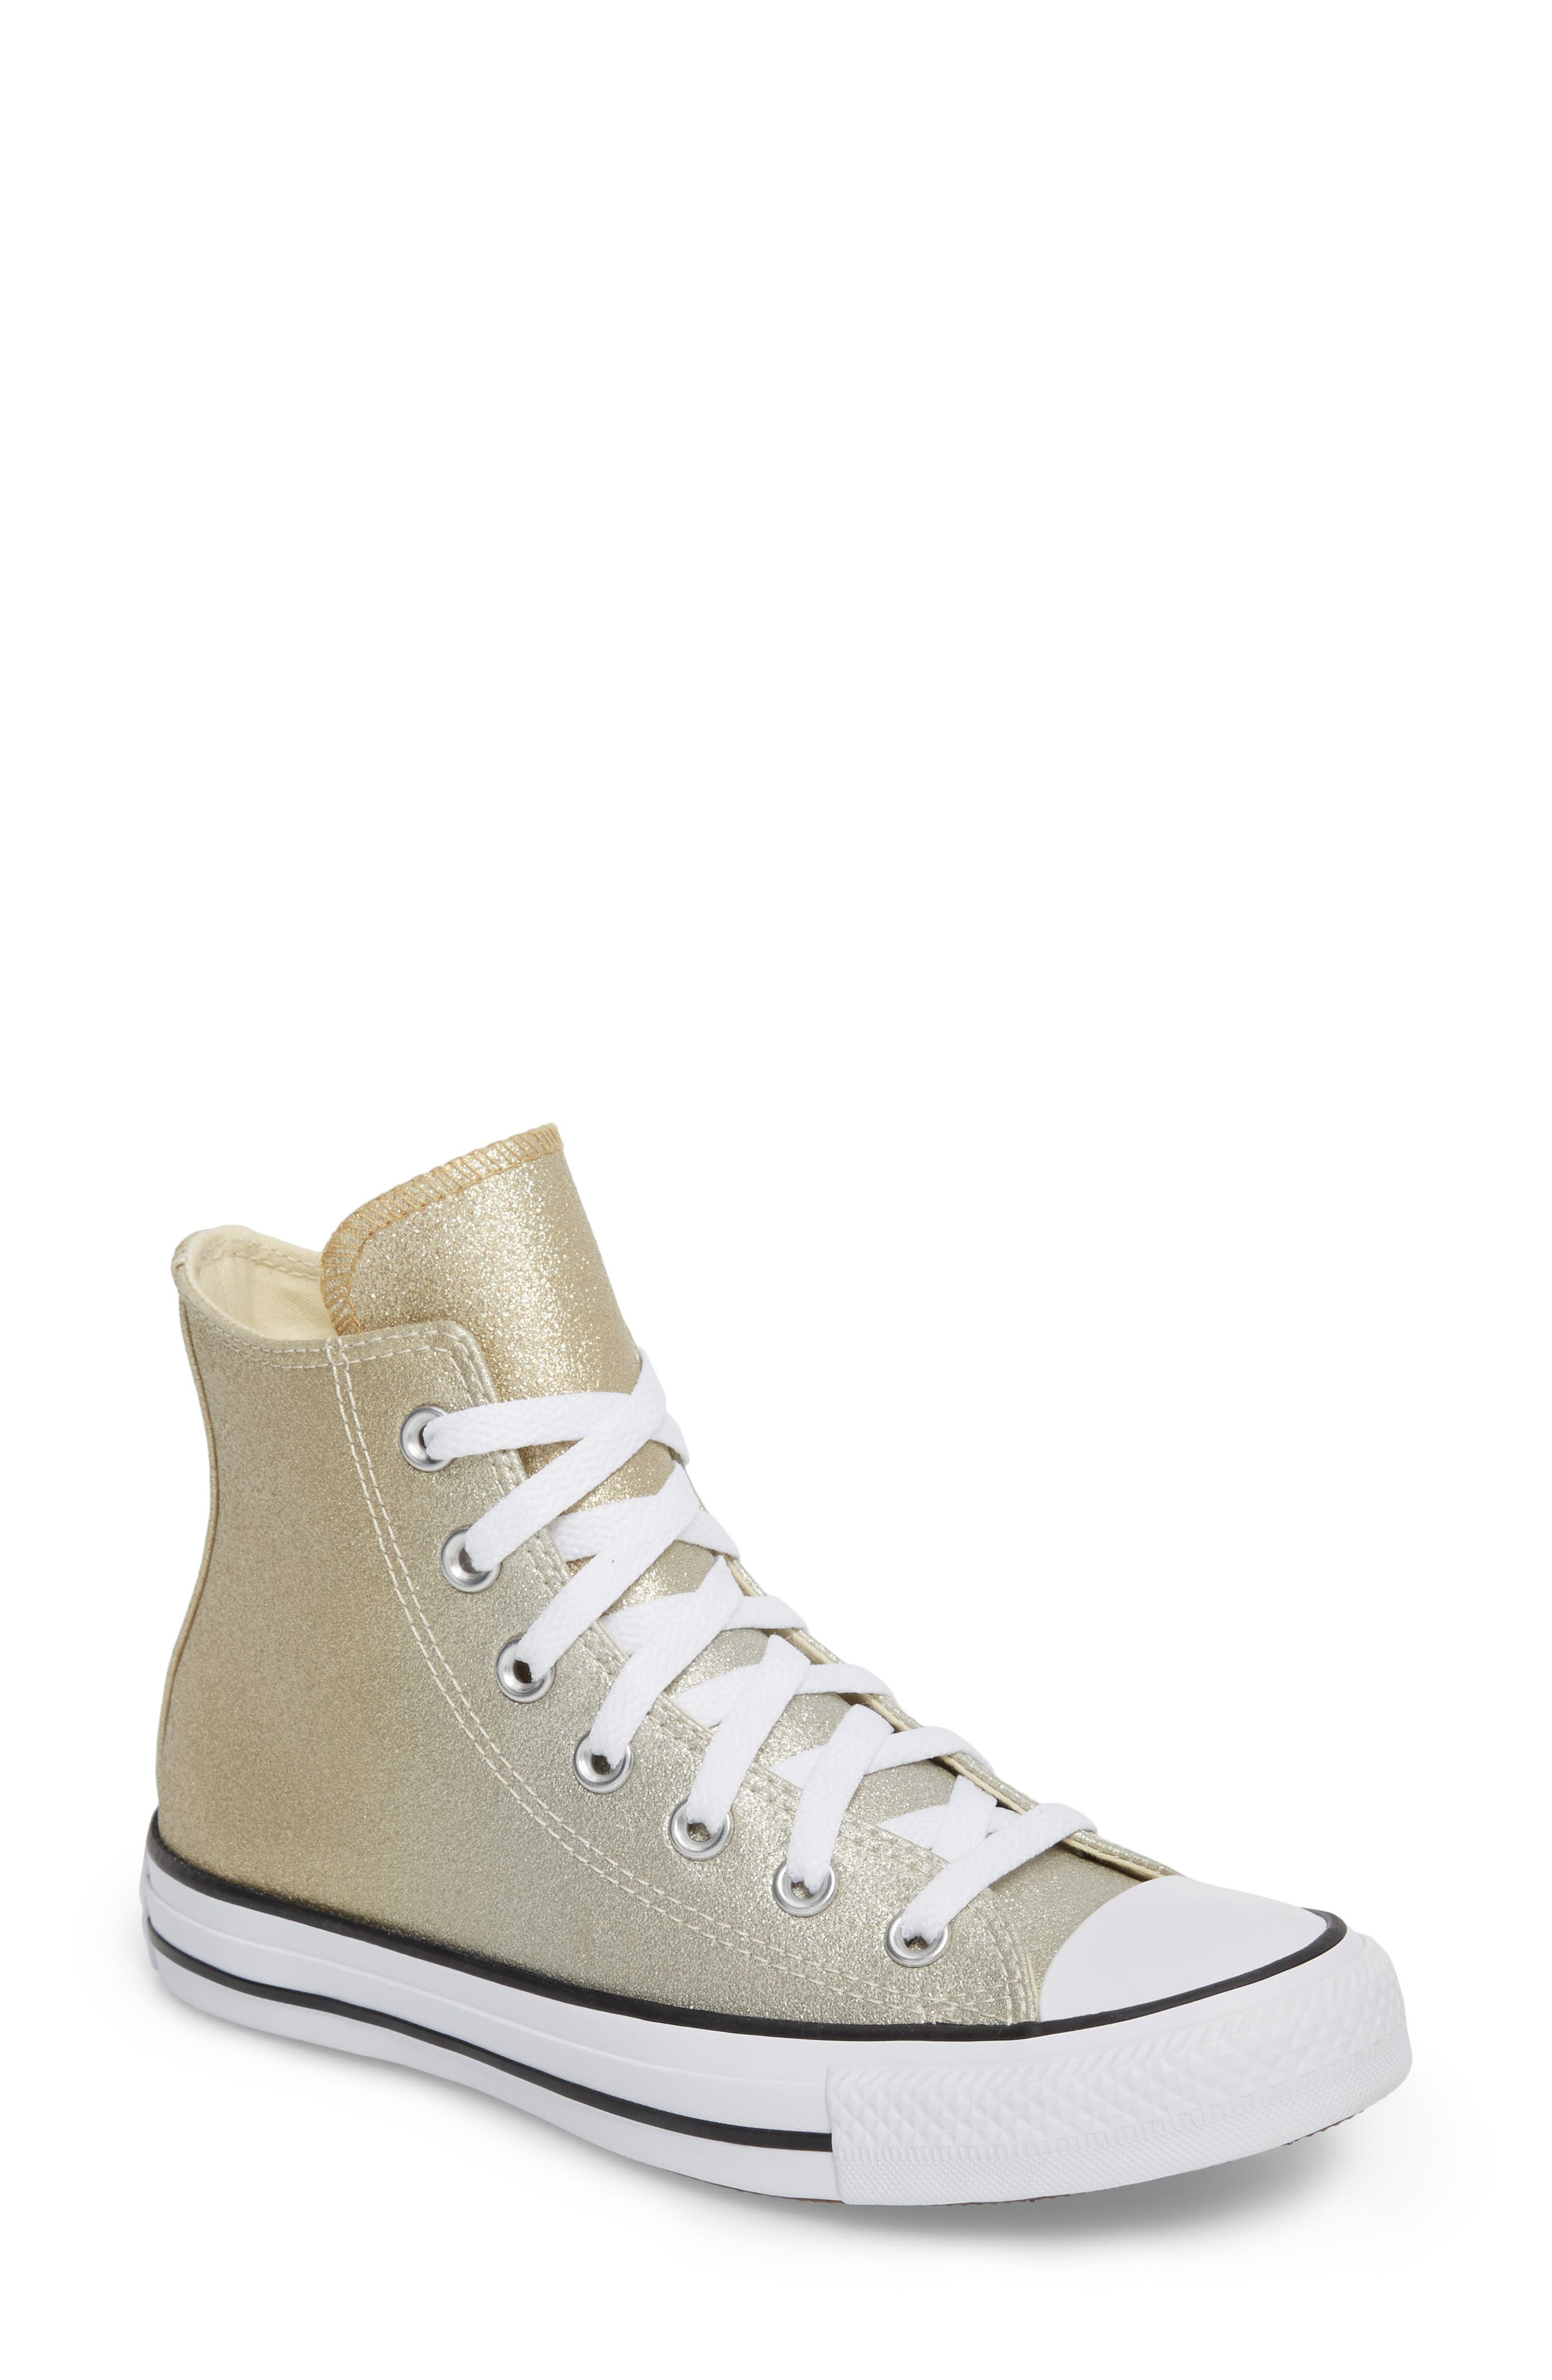 Chuck Taylor<sup>®</sup> All Star<sup>®</sup> Ombré Metallic High Top Sneaker,                         Main,                         color, Light Gold